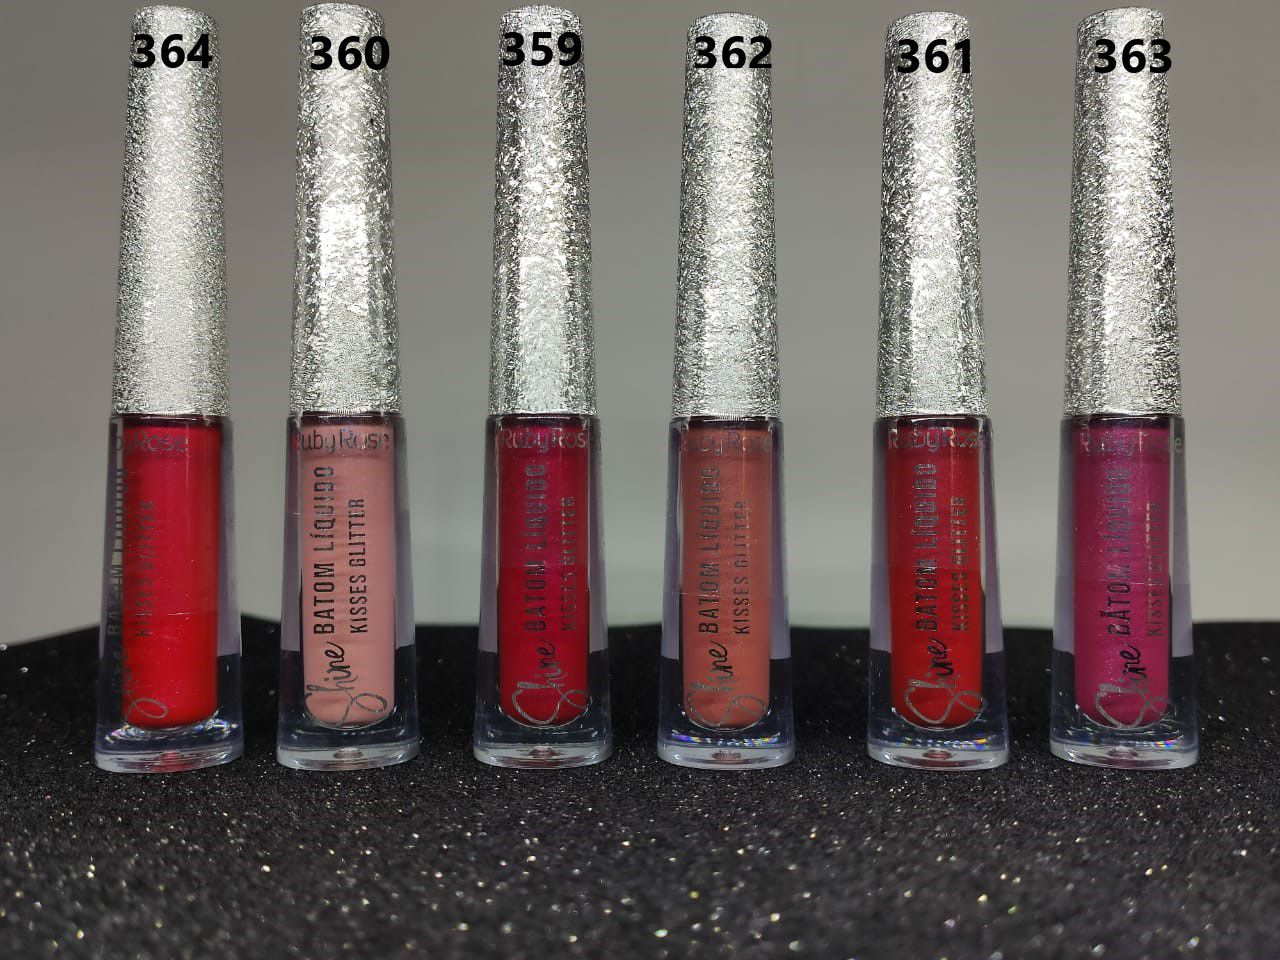 RUBY ROSE SHINE BATOM LIQUIDO KISSES GLITTER - G2 - RUBY ROSE